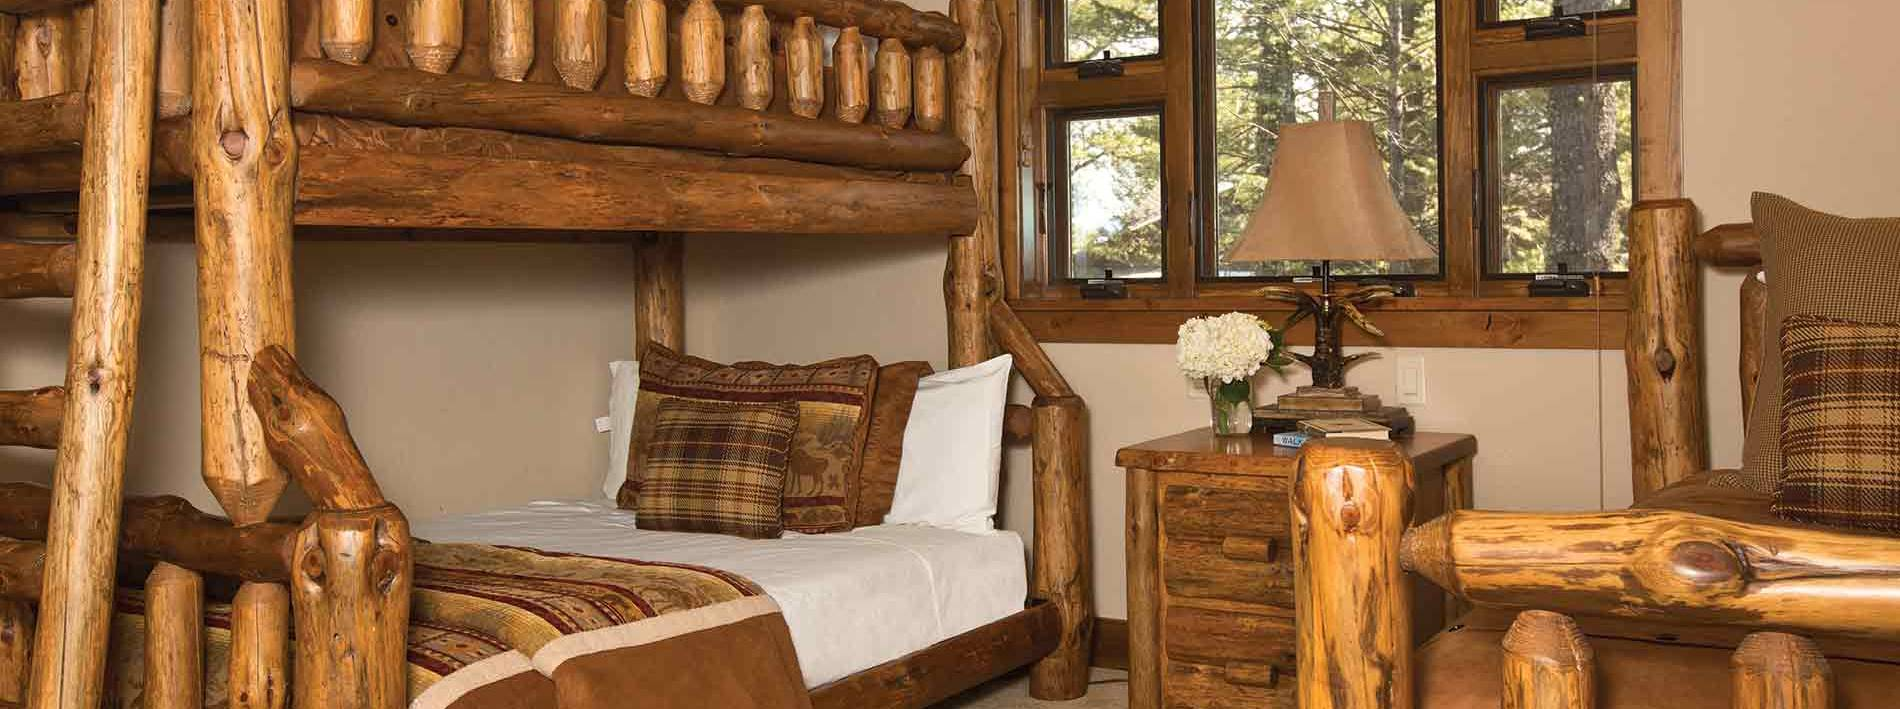 Bunk Beds in the Blue Moose Lodge in Jackson Hole